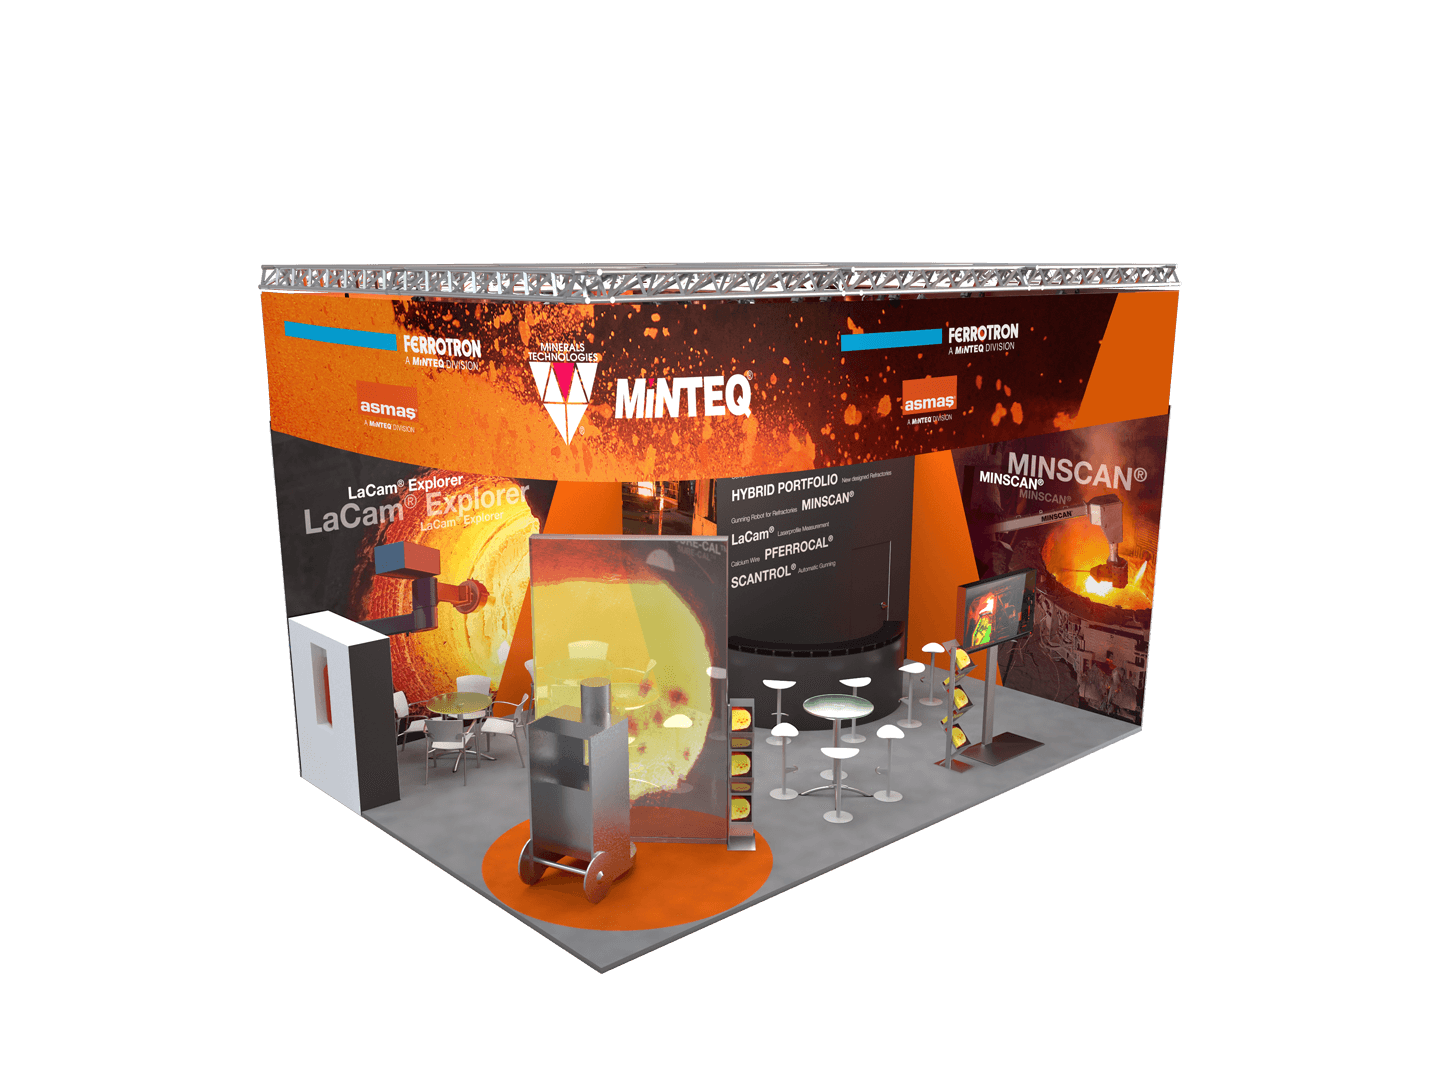 minteq-messe-header-1-1.png